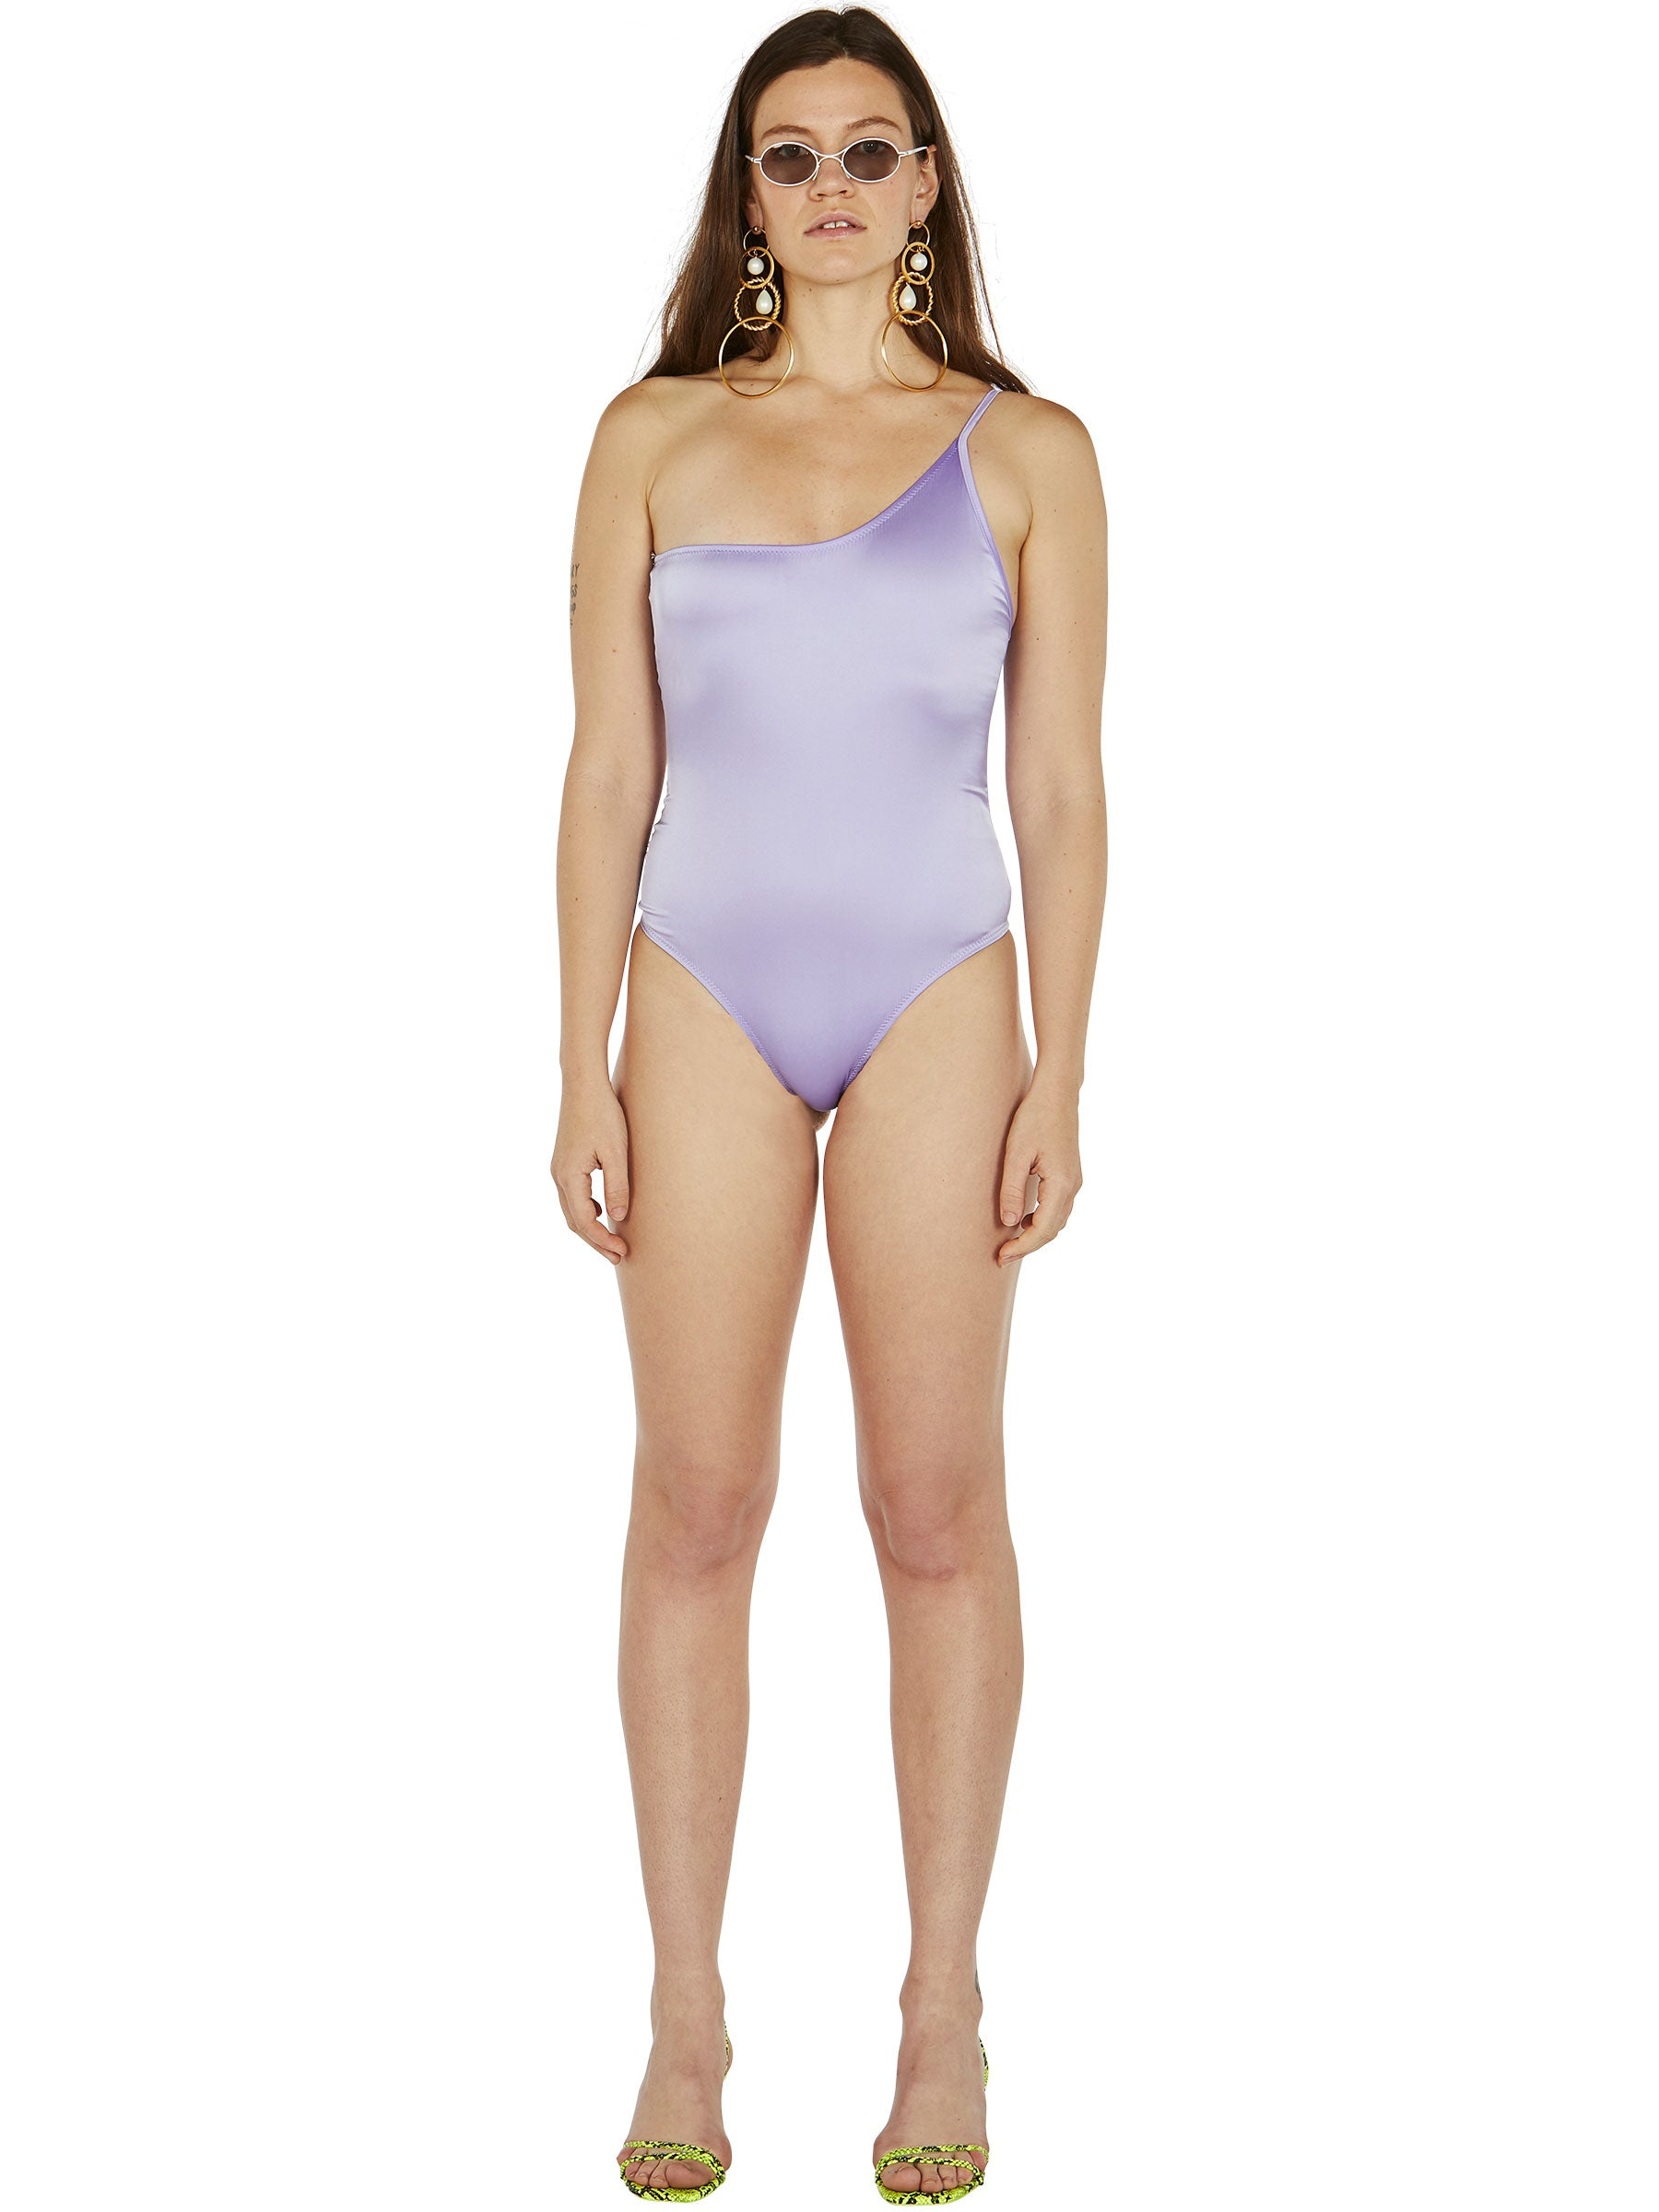 odd92 Fantabody Lilac Pina Swimsuit Spring/Summer 2019 Womenswear - 5